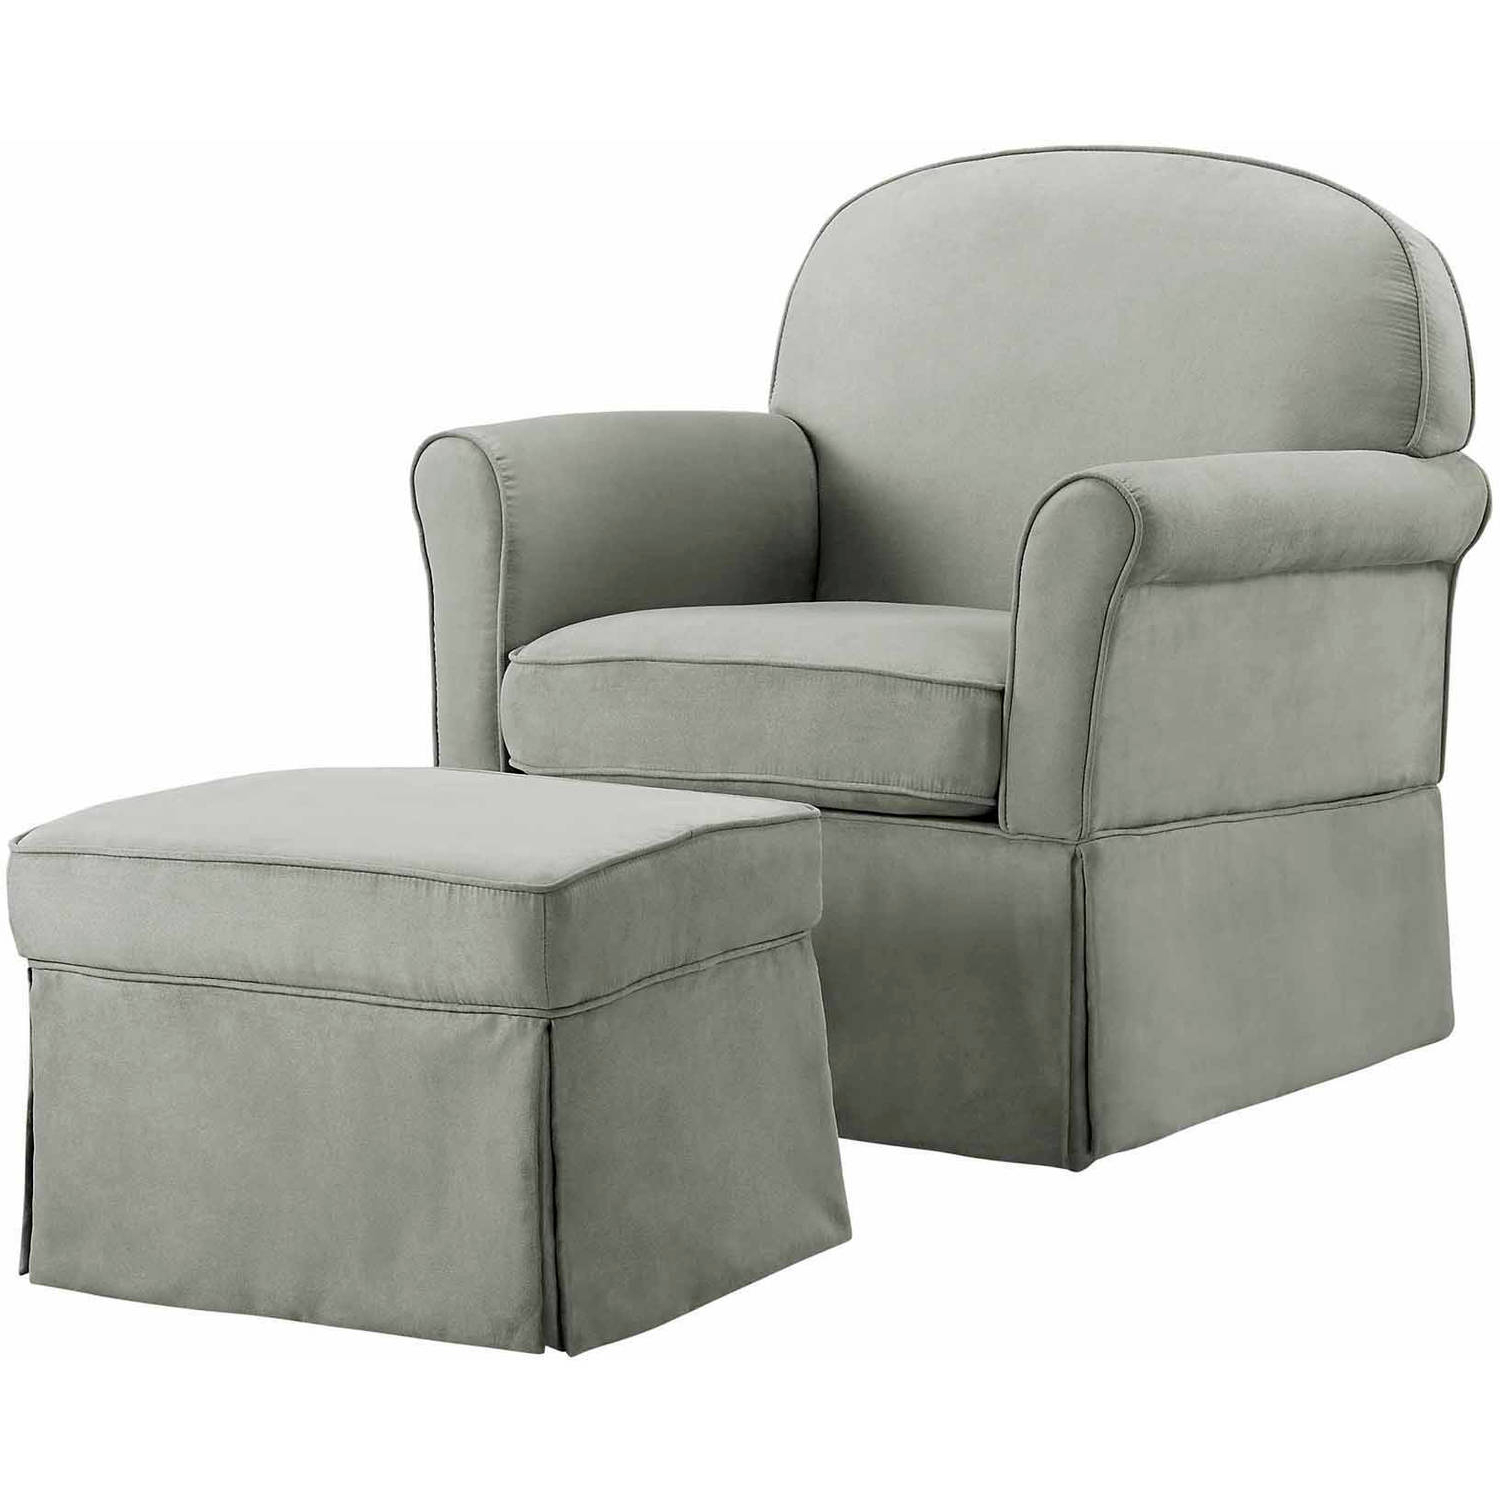 Baby Relax Evan Swivel Glider And Ottoman Gray – Walmart Inside Well Liked Abbey Swivel Glider Recliners (View 9 of 20)